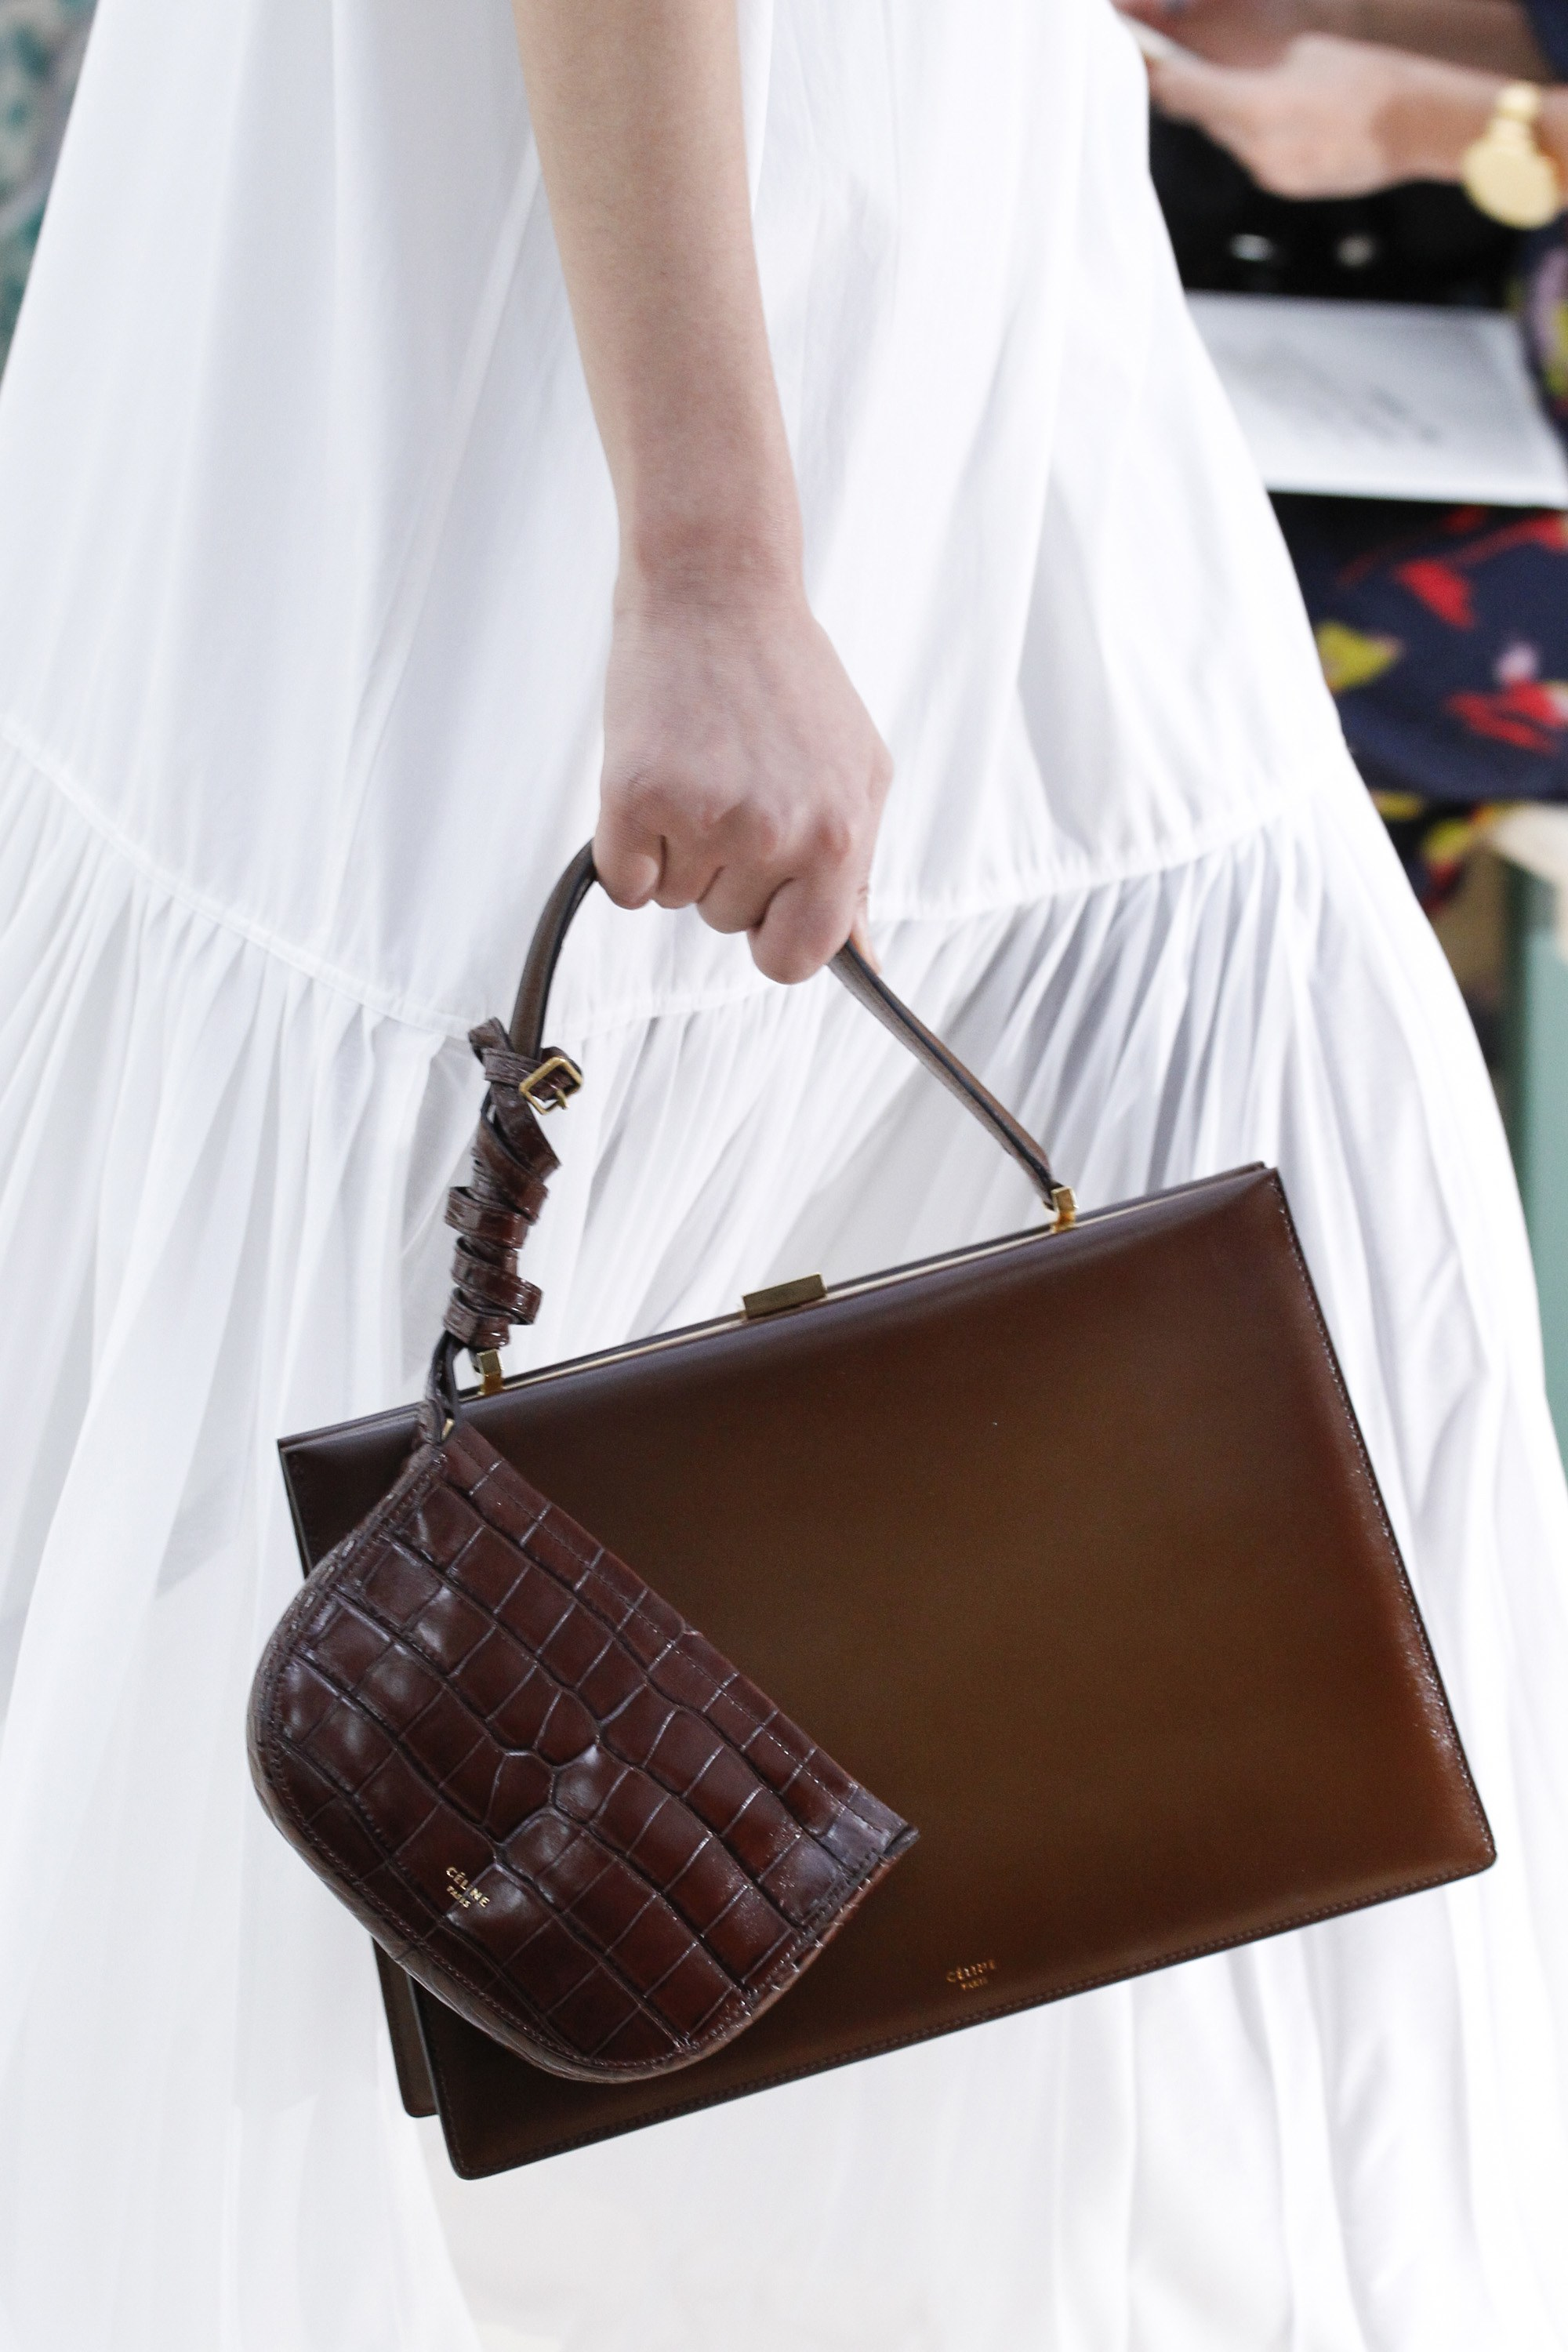 Clasp Bags Are This Year S Must Have Autumn Fashion Accessory News